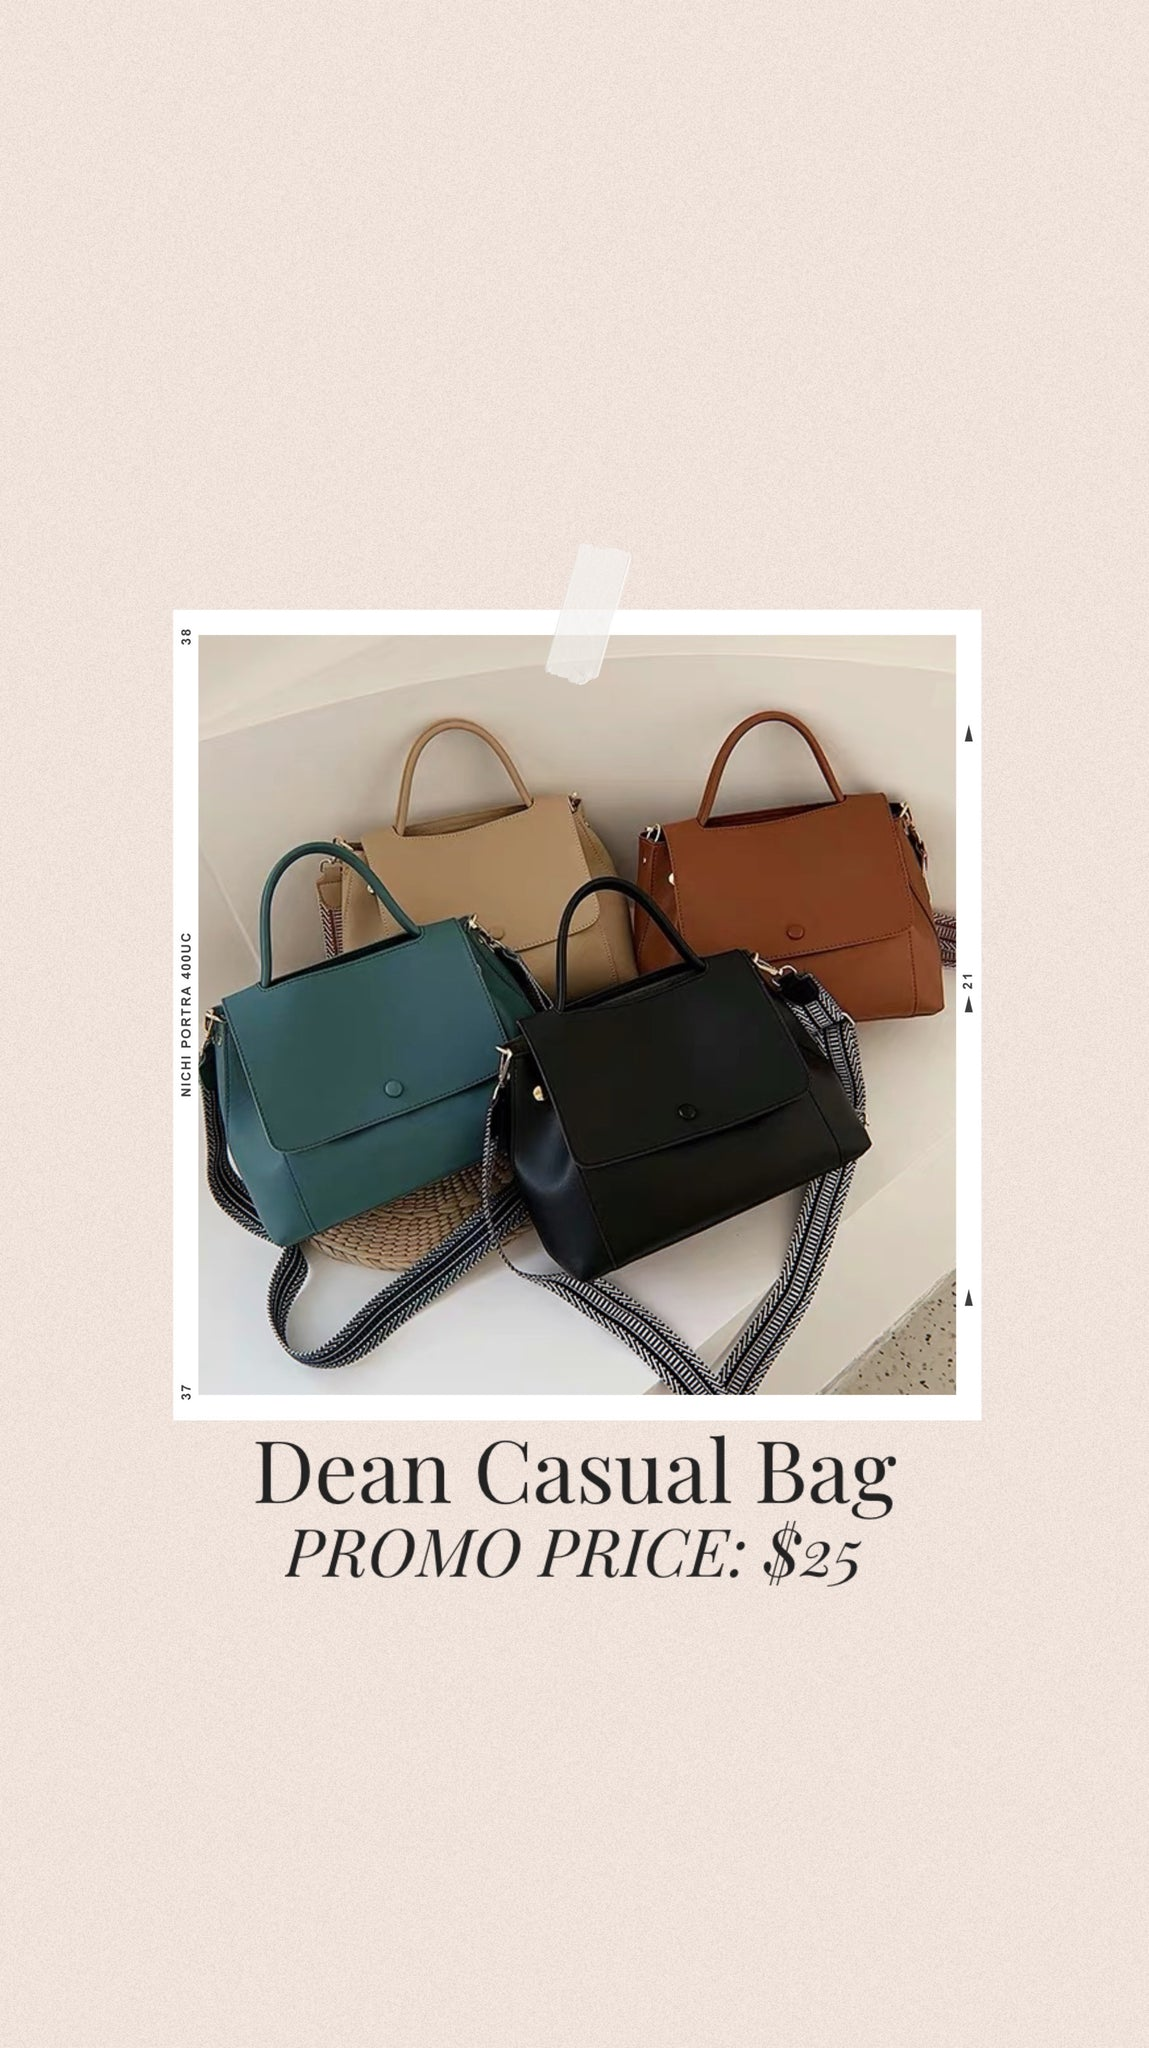 Dean Casual Bag